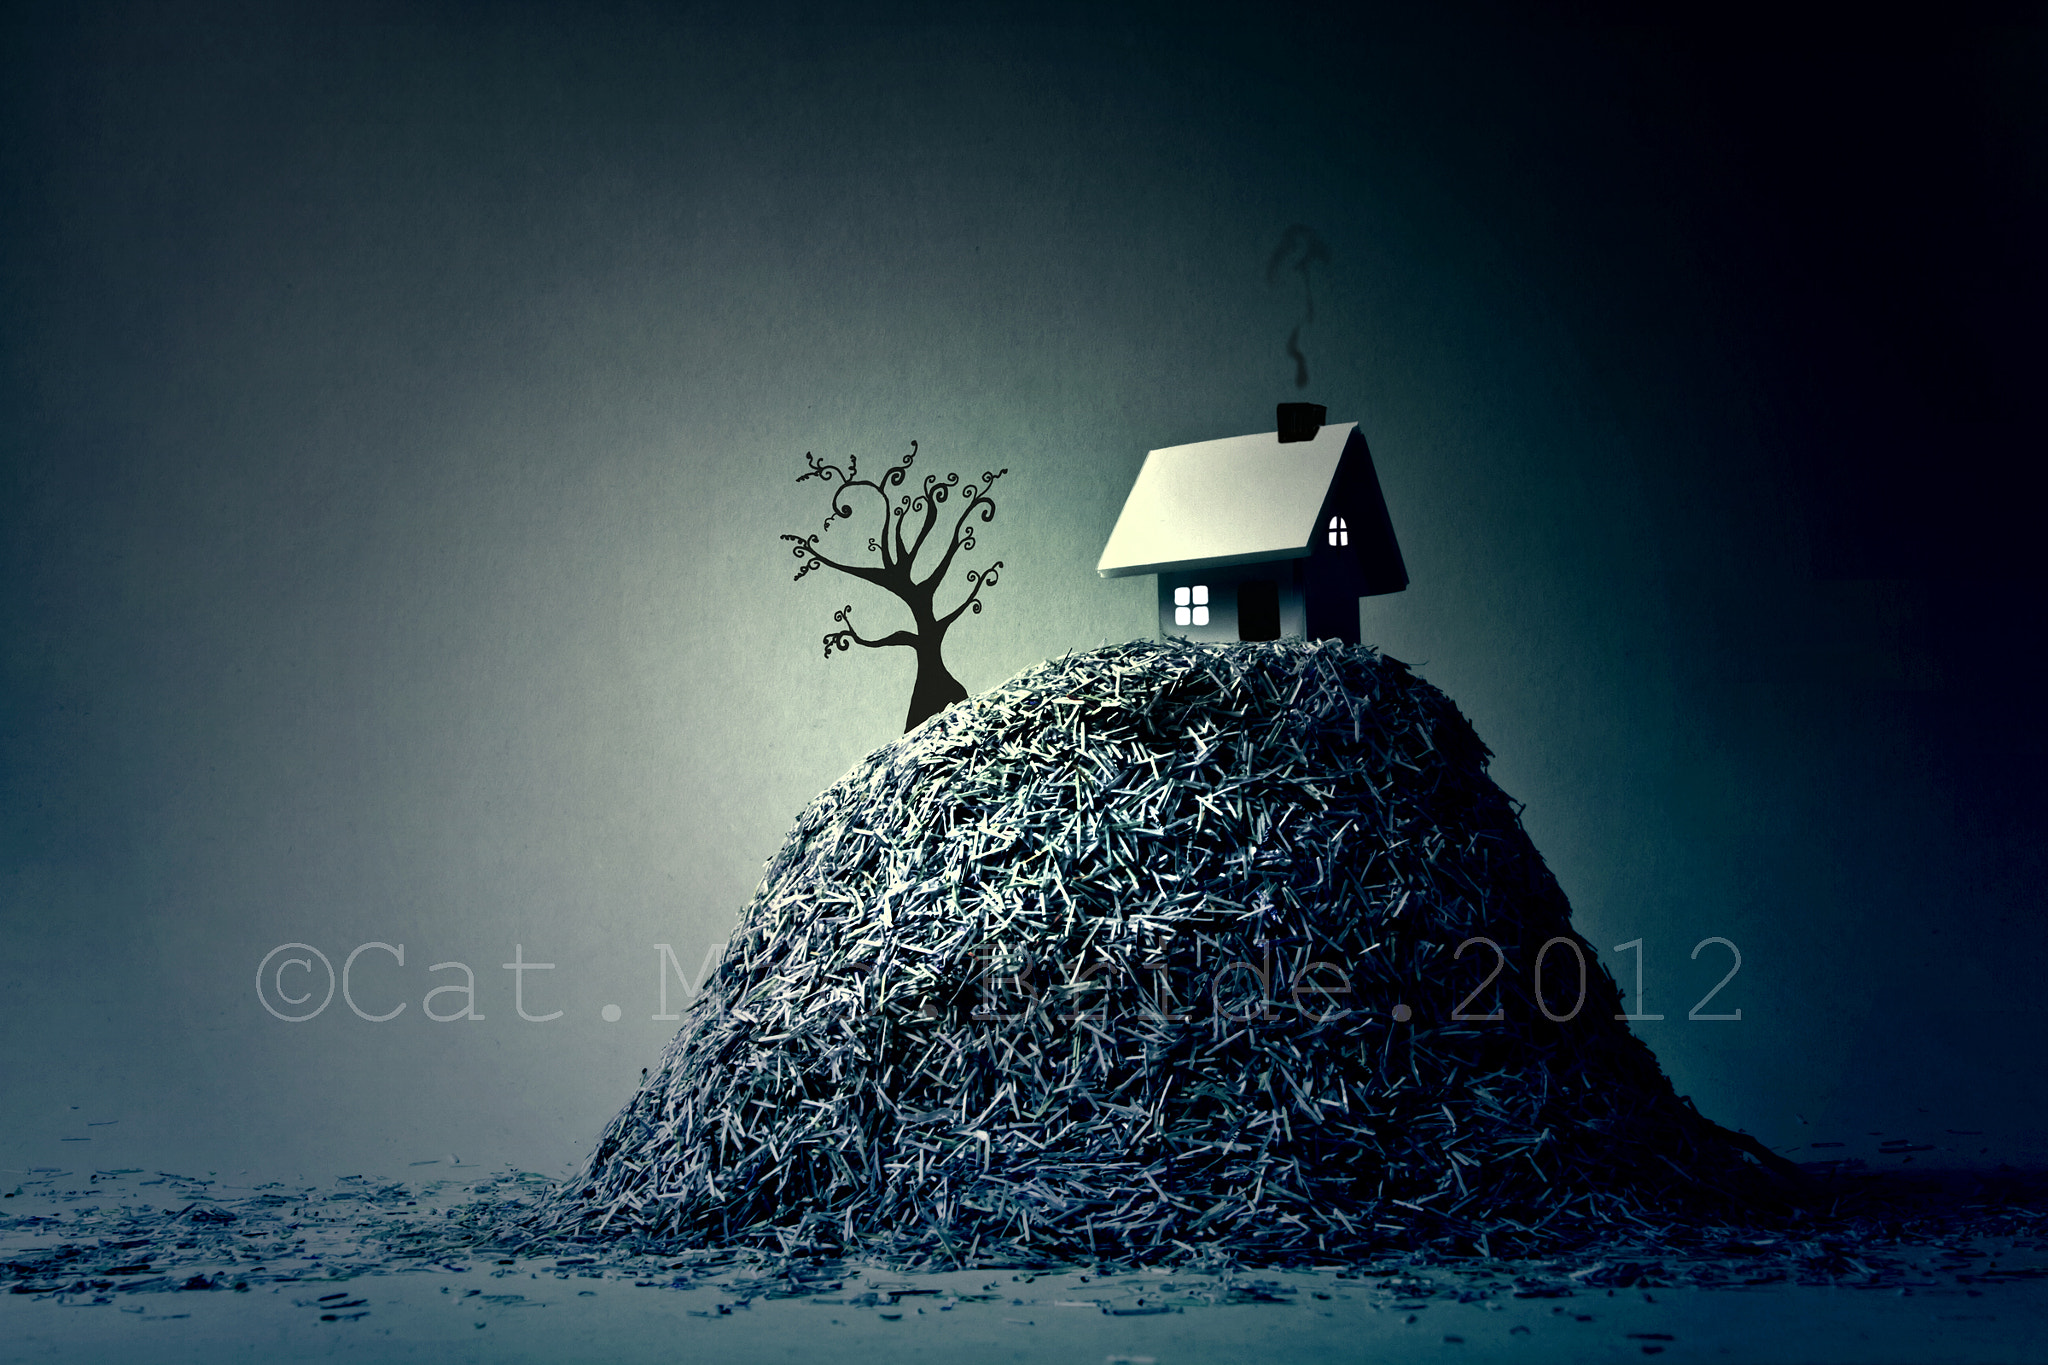 Photograph The house on paper hill by Catherine MacBride on 500px